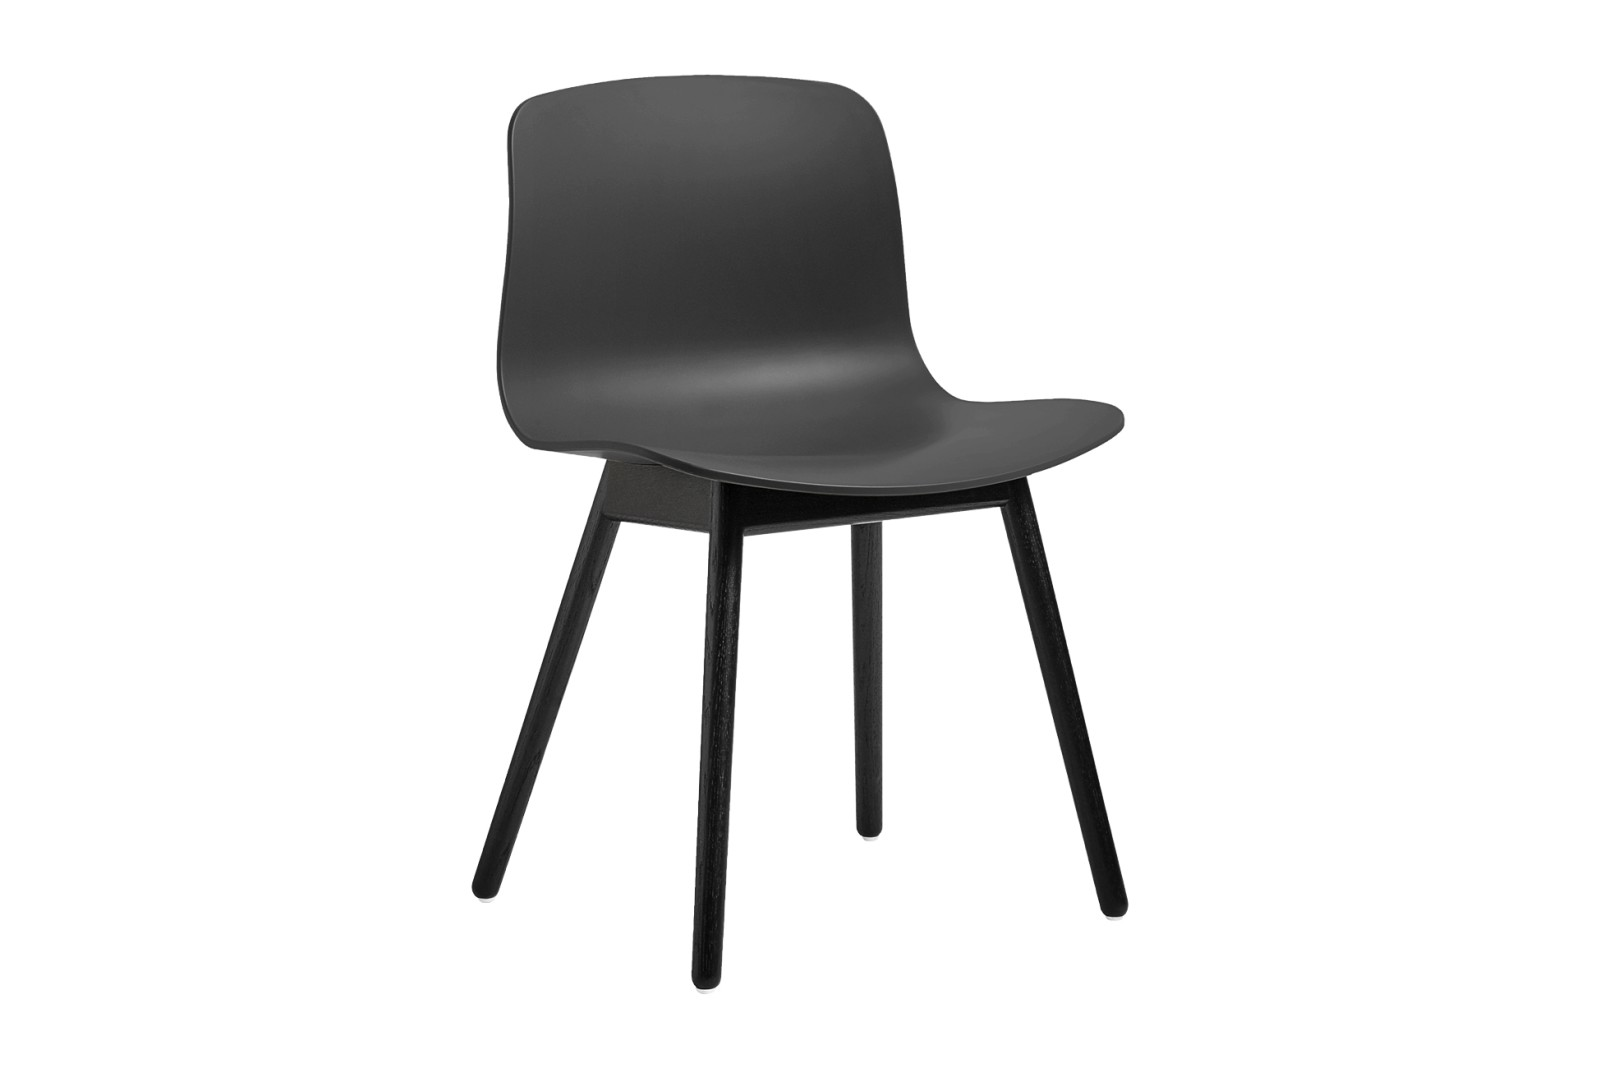 About A Chair AAC12 Soft Black Seat and Black Stained Base